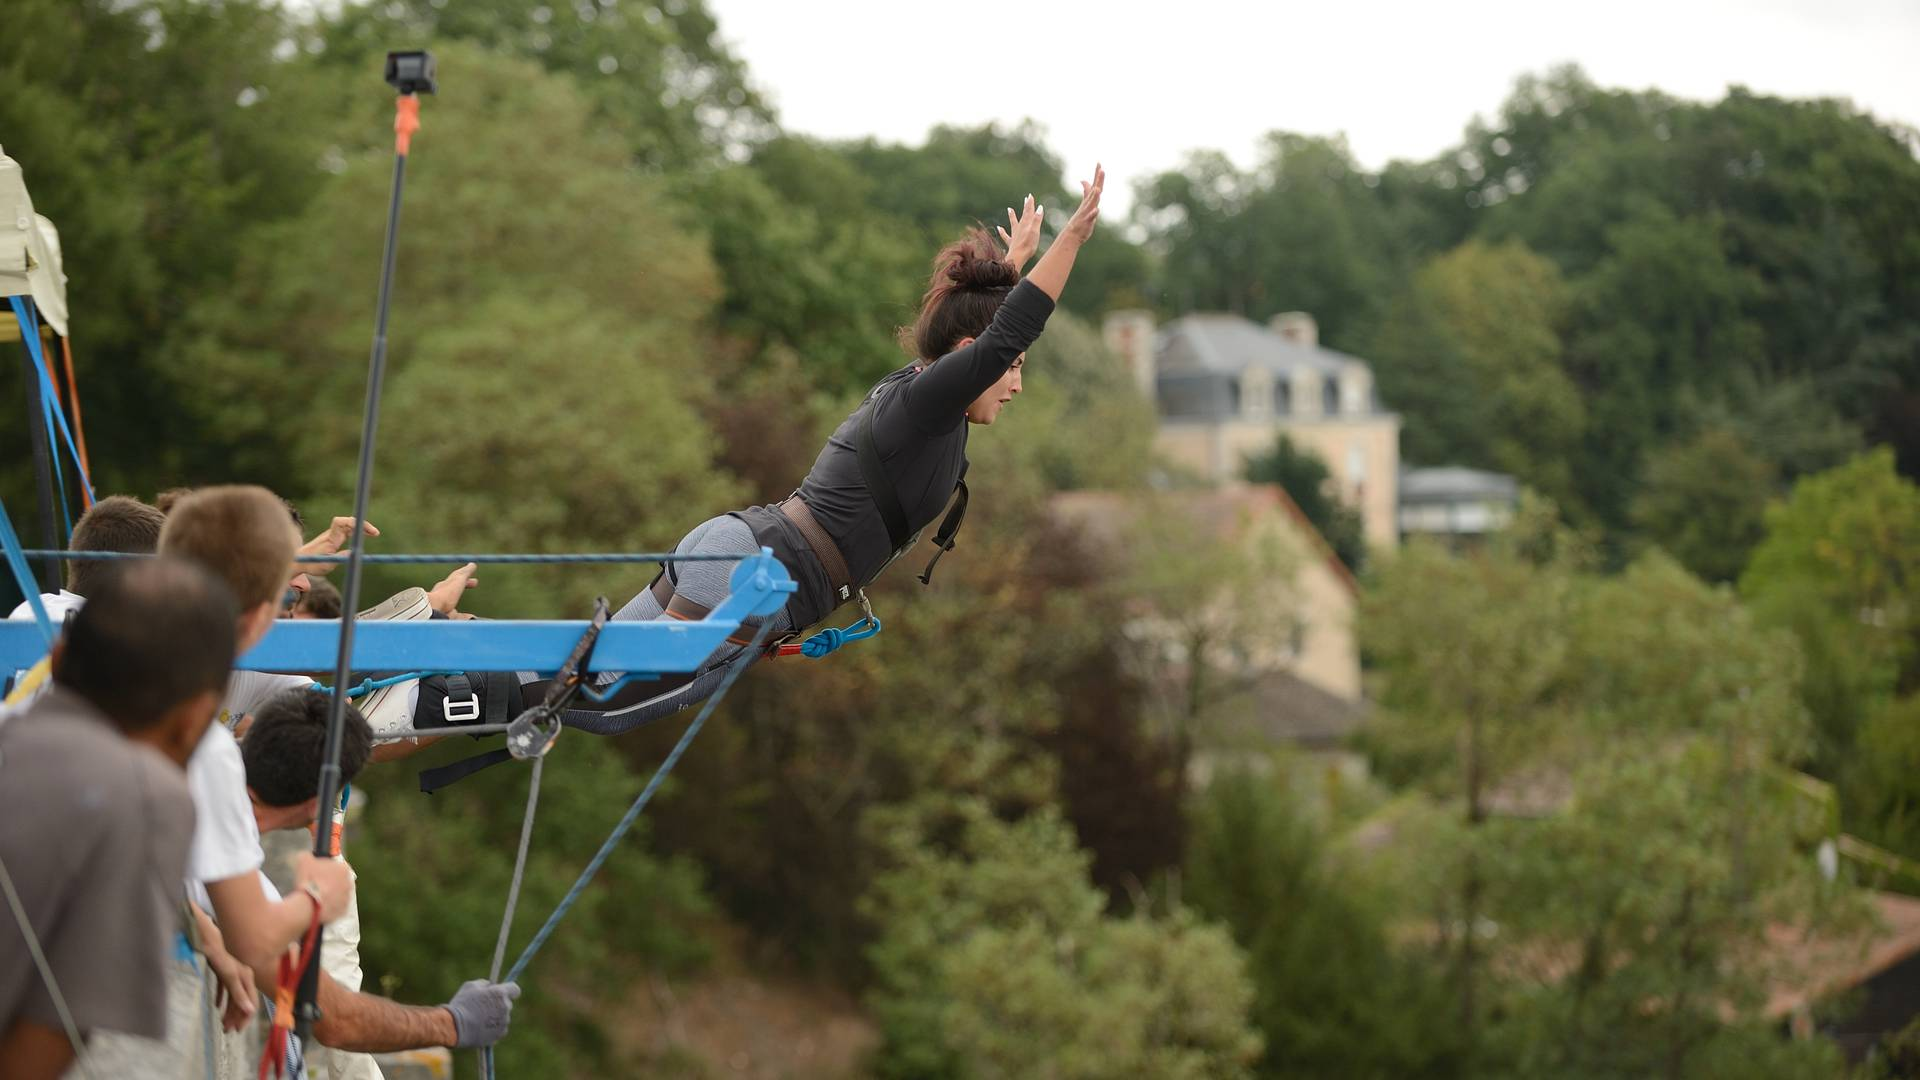 Bungee jumping in Sud-Vienne-Poitou